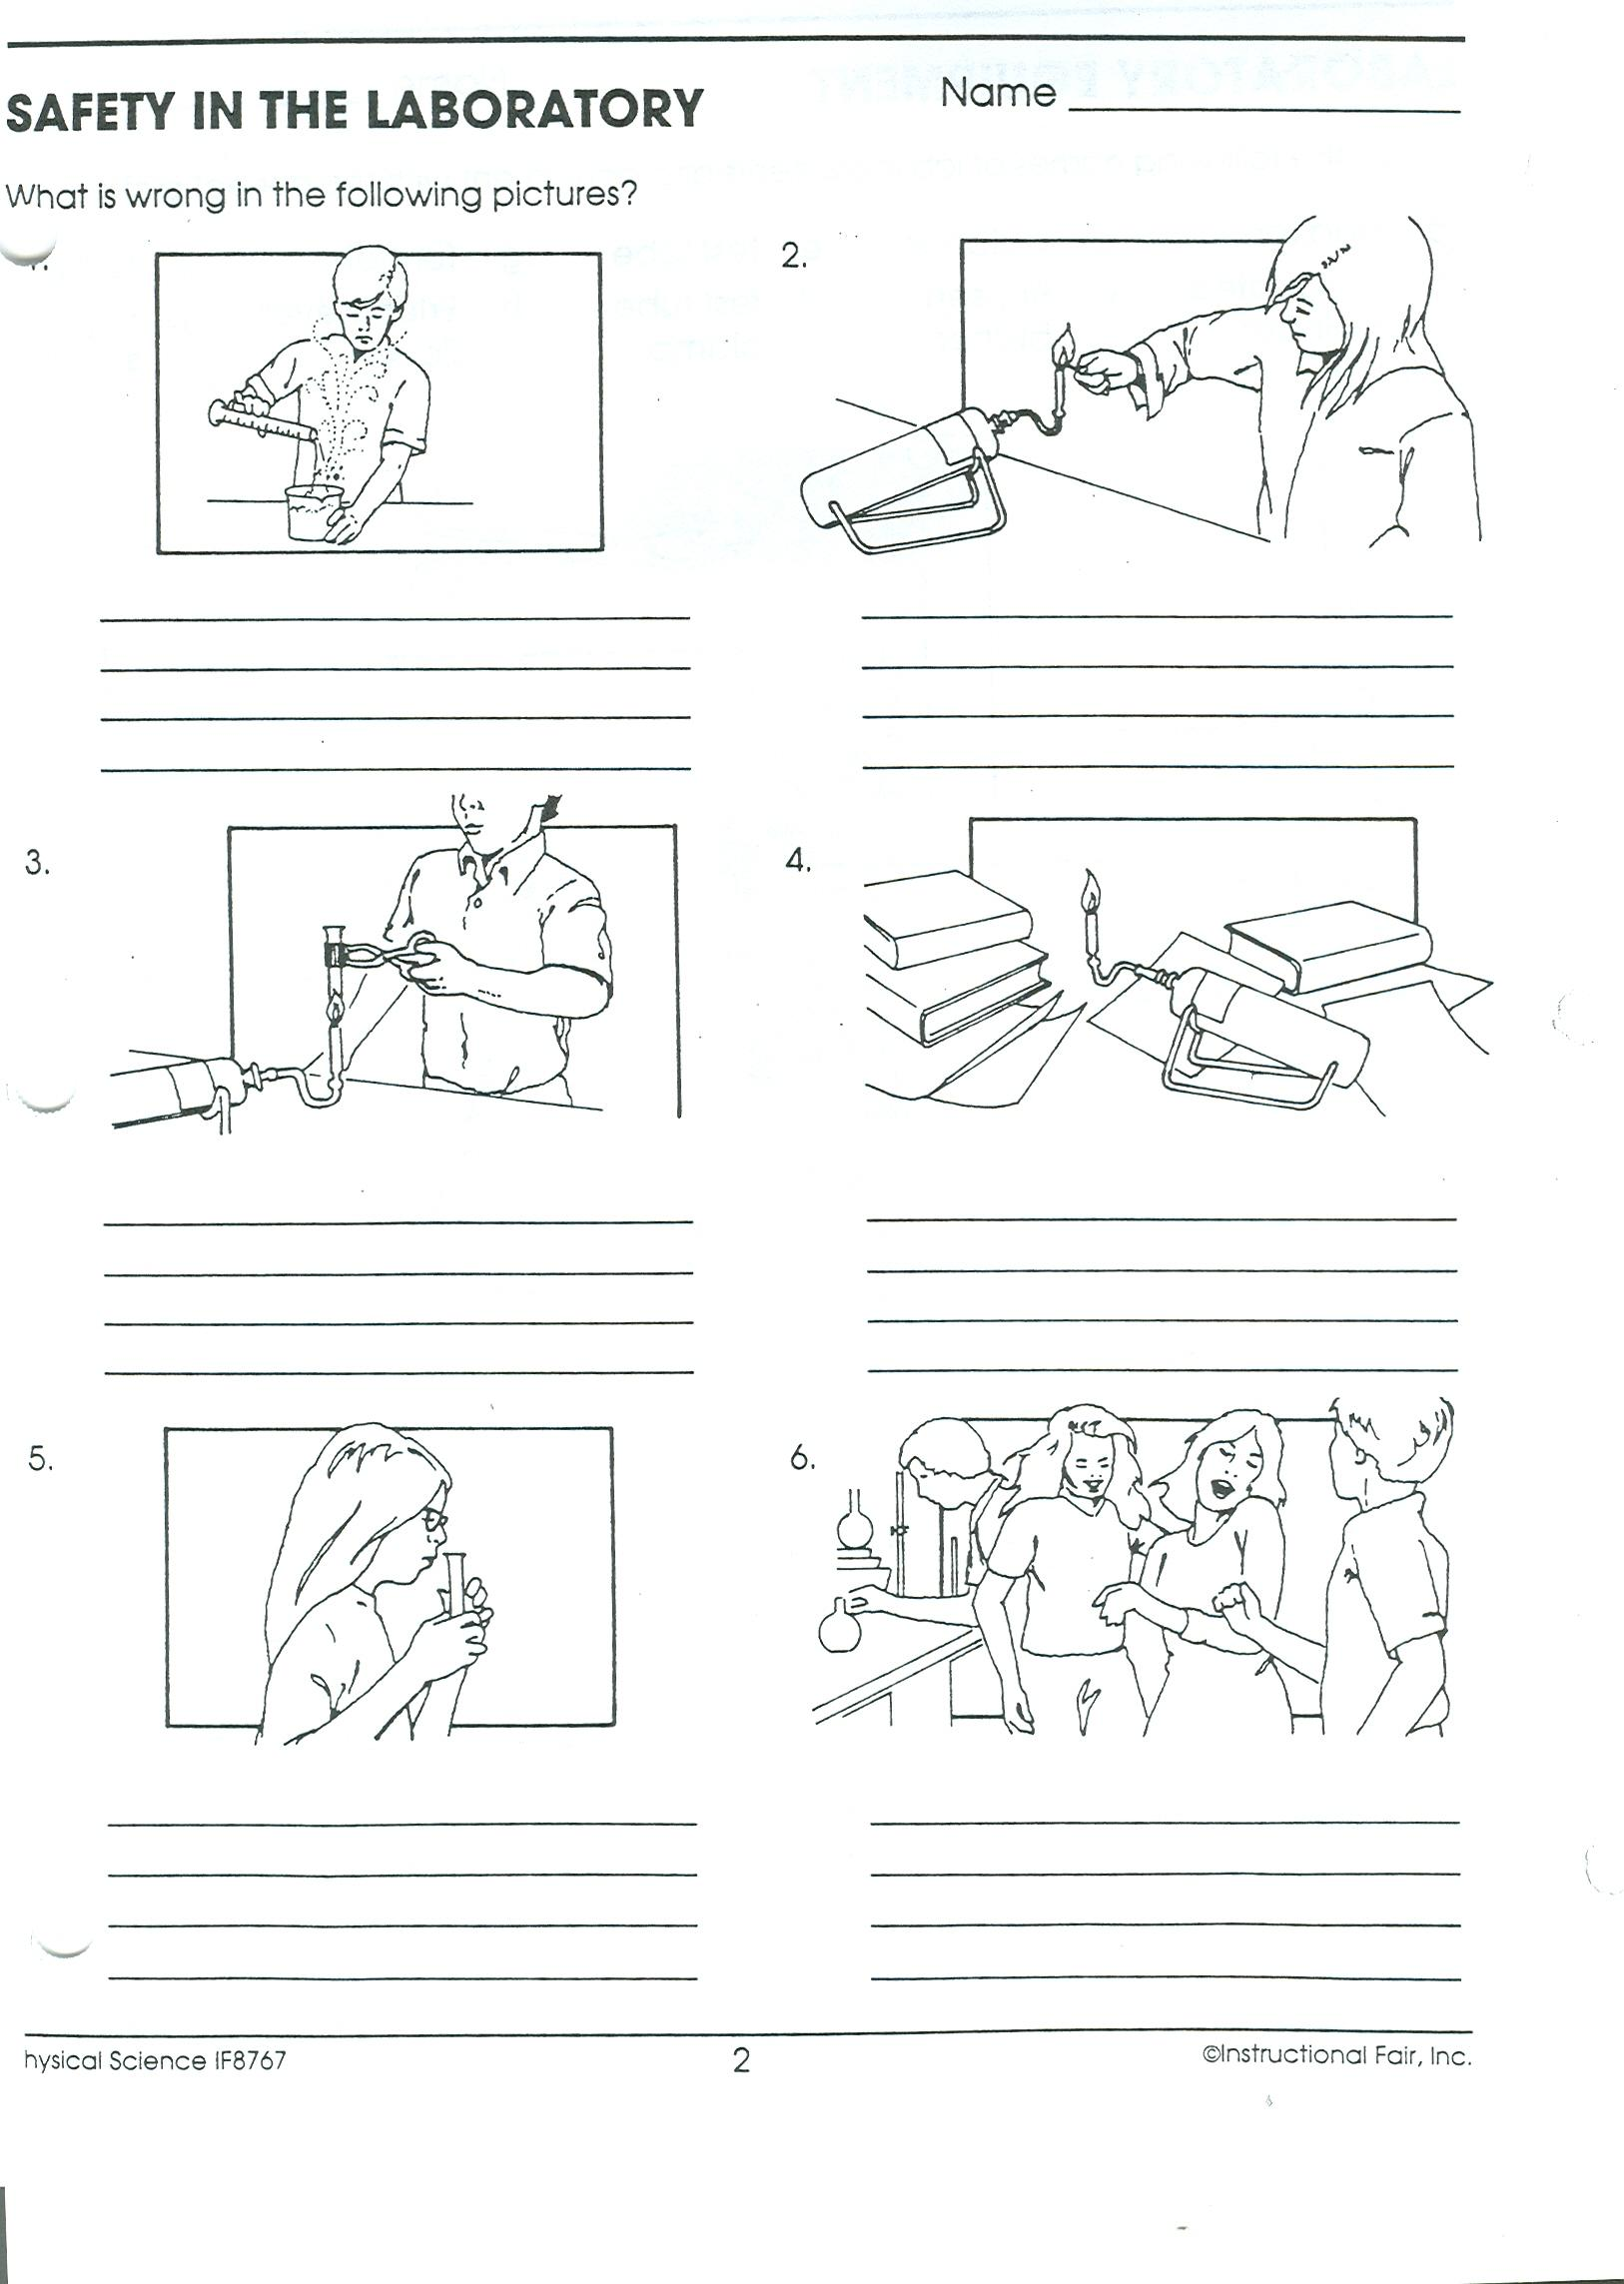 Printables Lab Safety Rules Worksheet science class on line e mail the safety rules that are being violated in each picture to mr sheehy